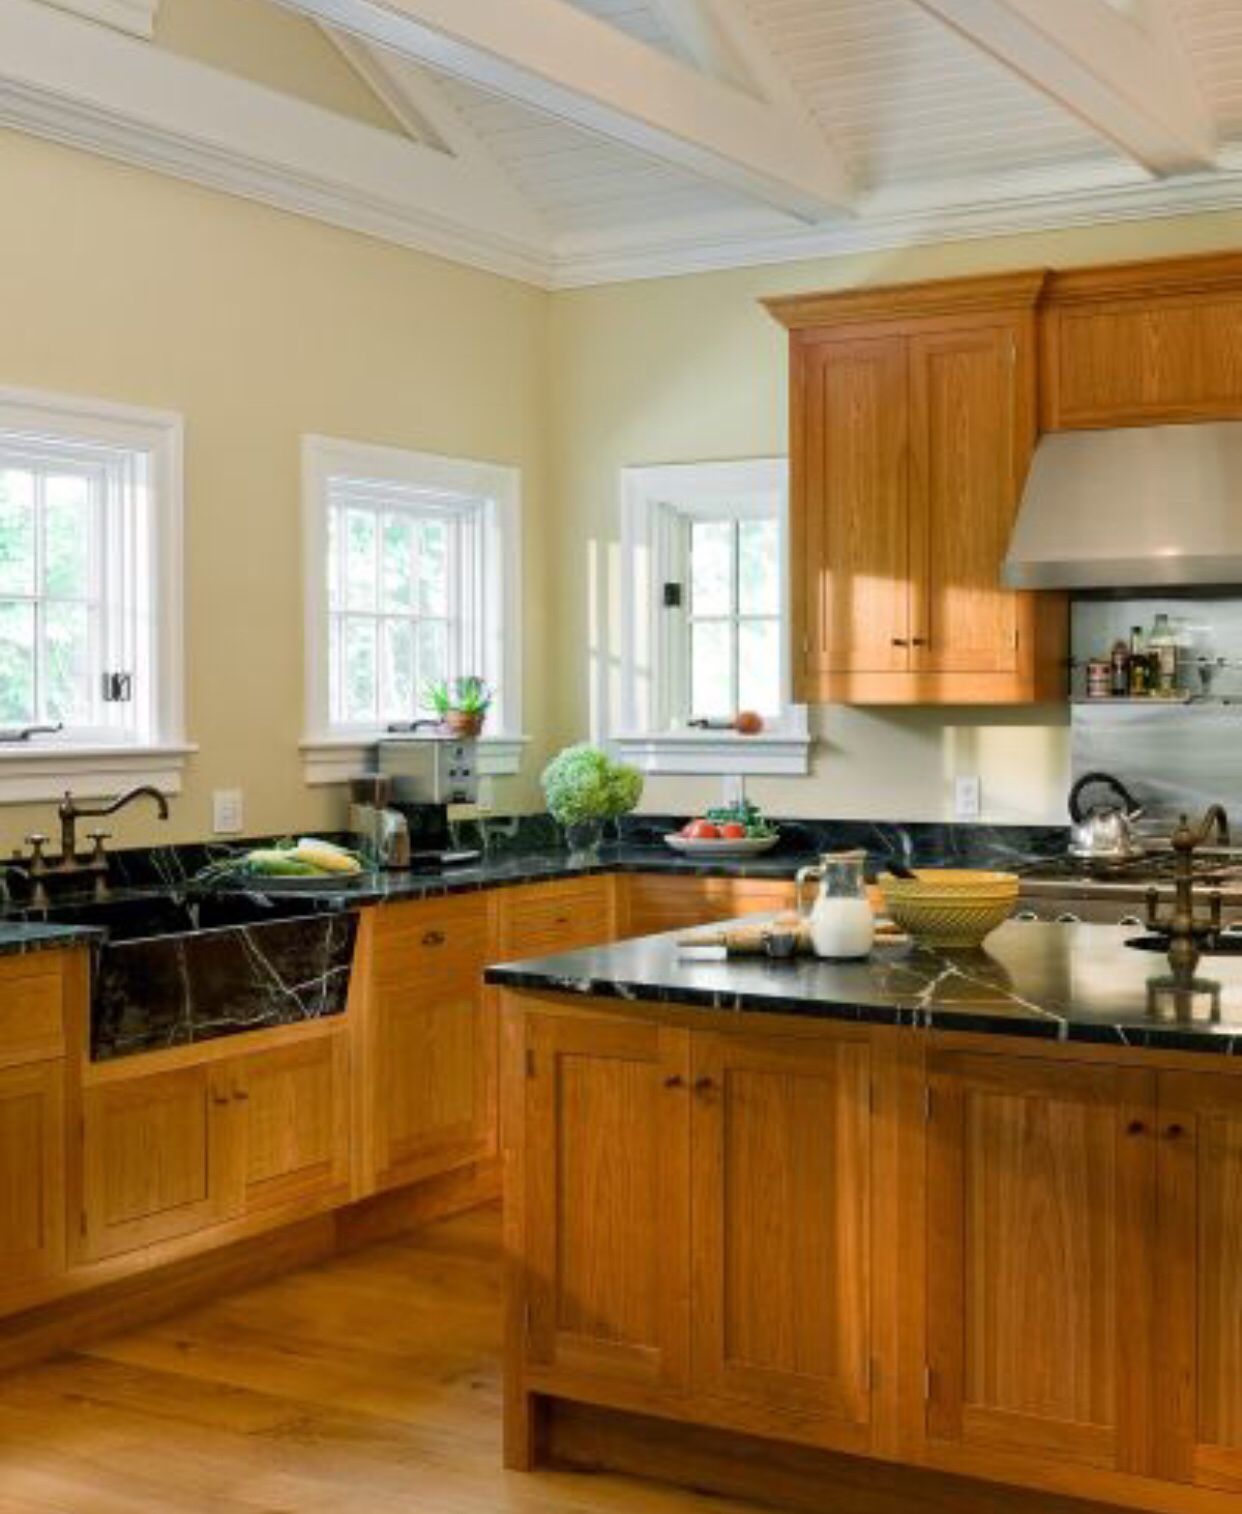 Yellow kitchen walls by Catherine Cranwell on Remodeling ...